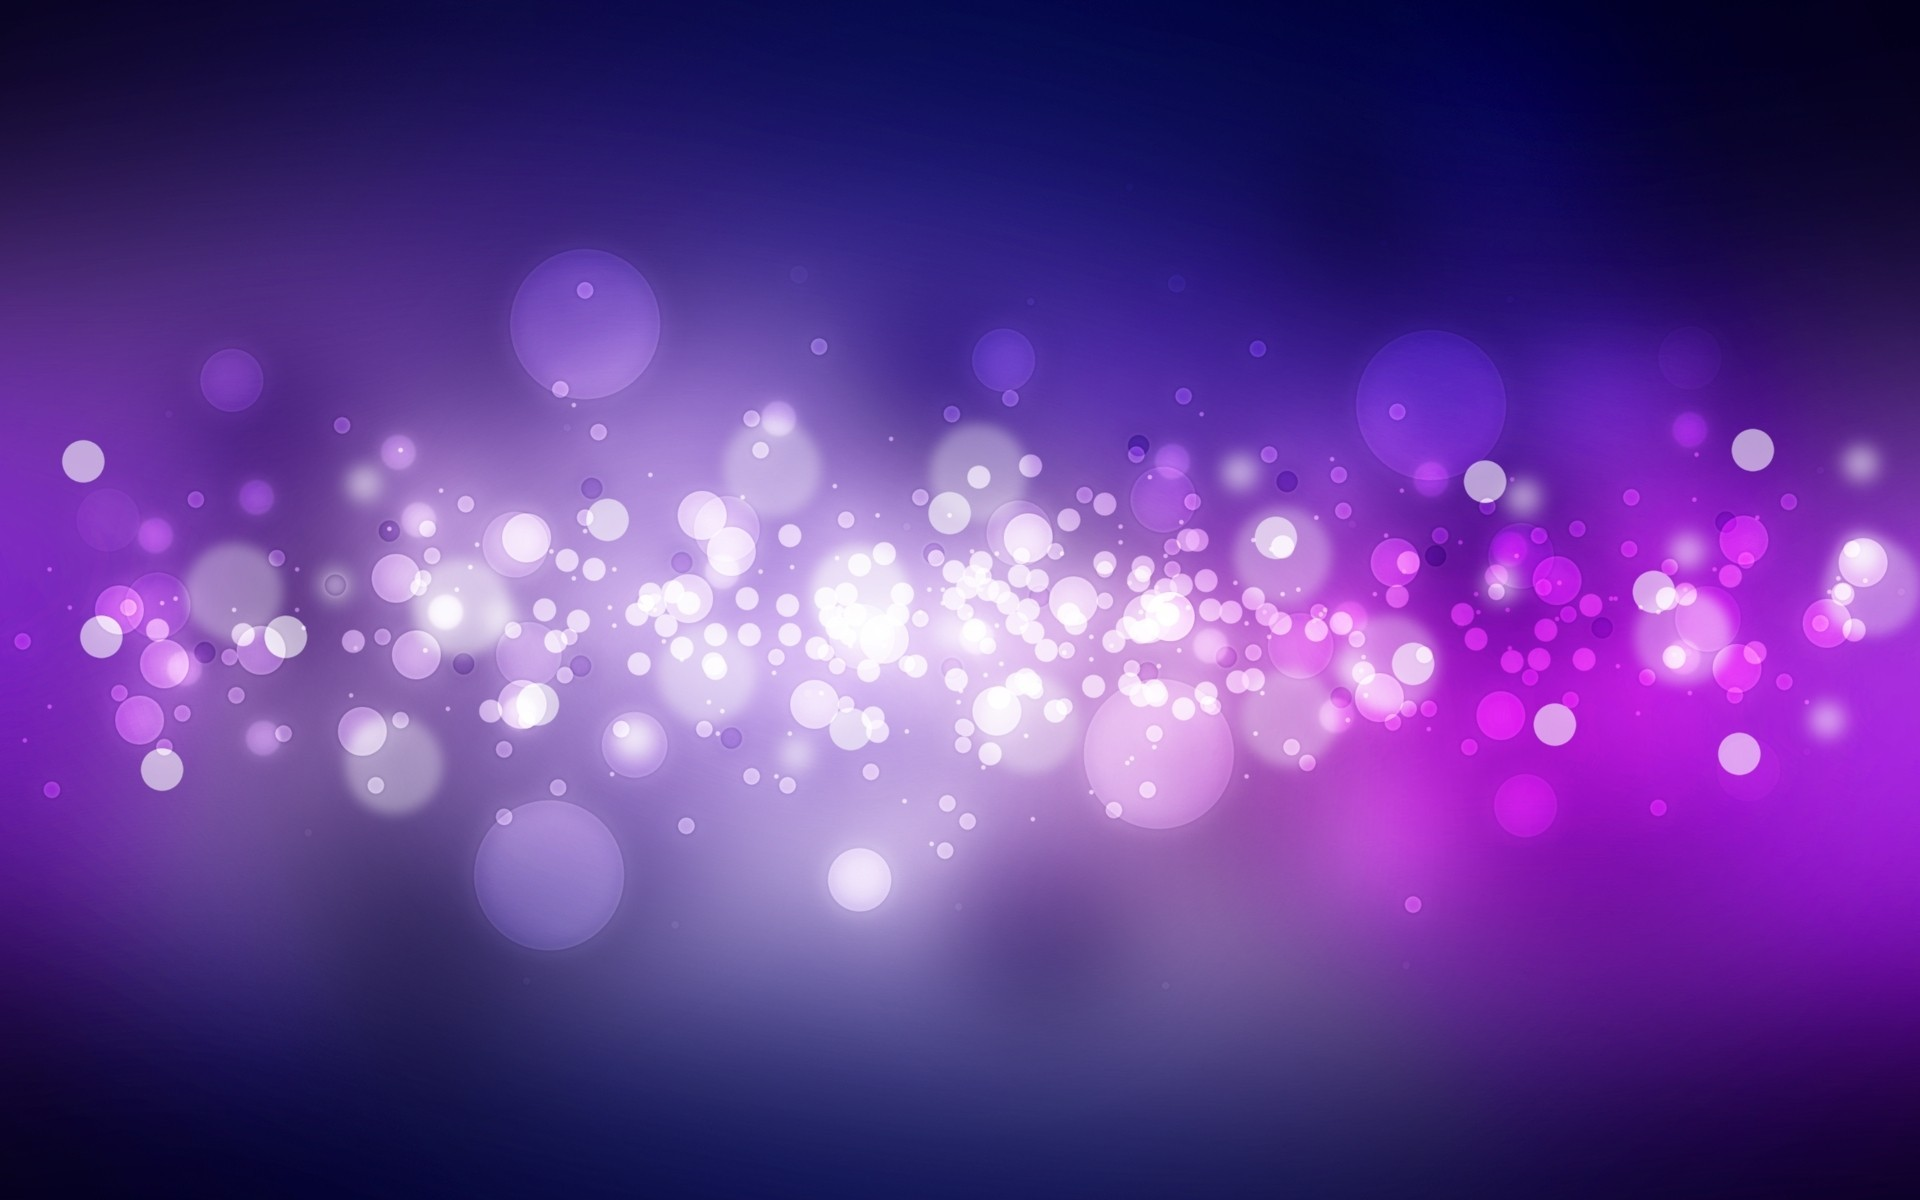 1920x1200 Purple Bubbles Wallpaper 30970